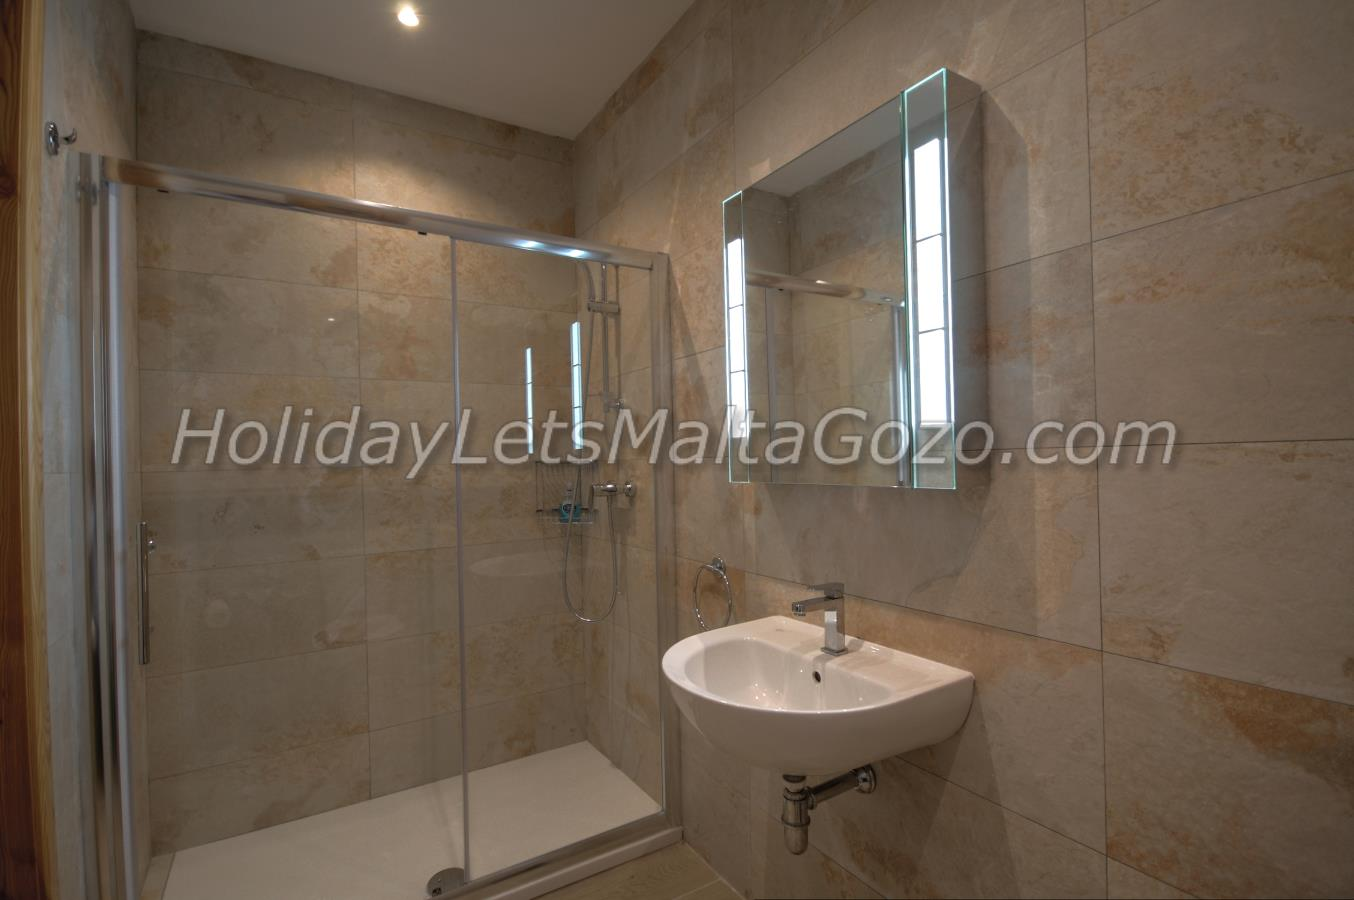 Large shower cubicle en-suite to double bedroom